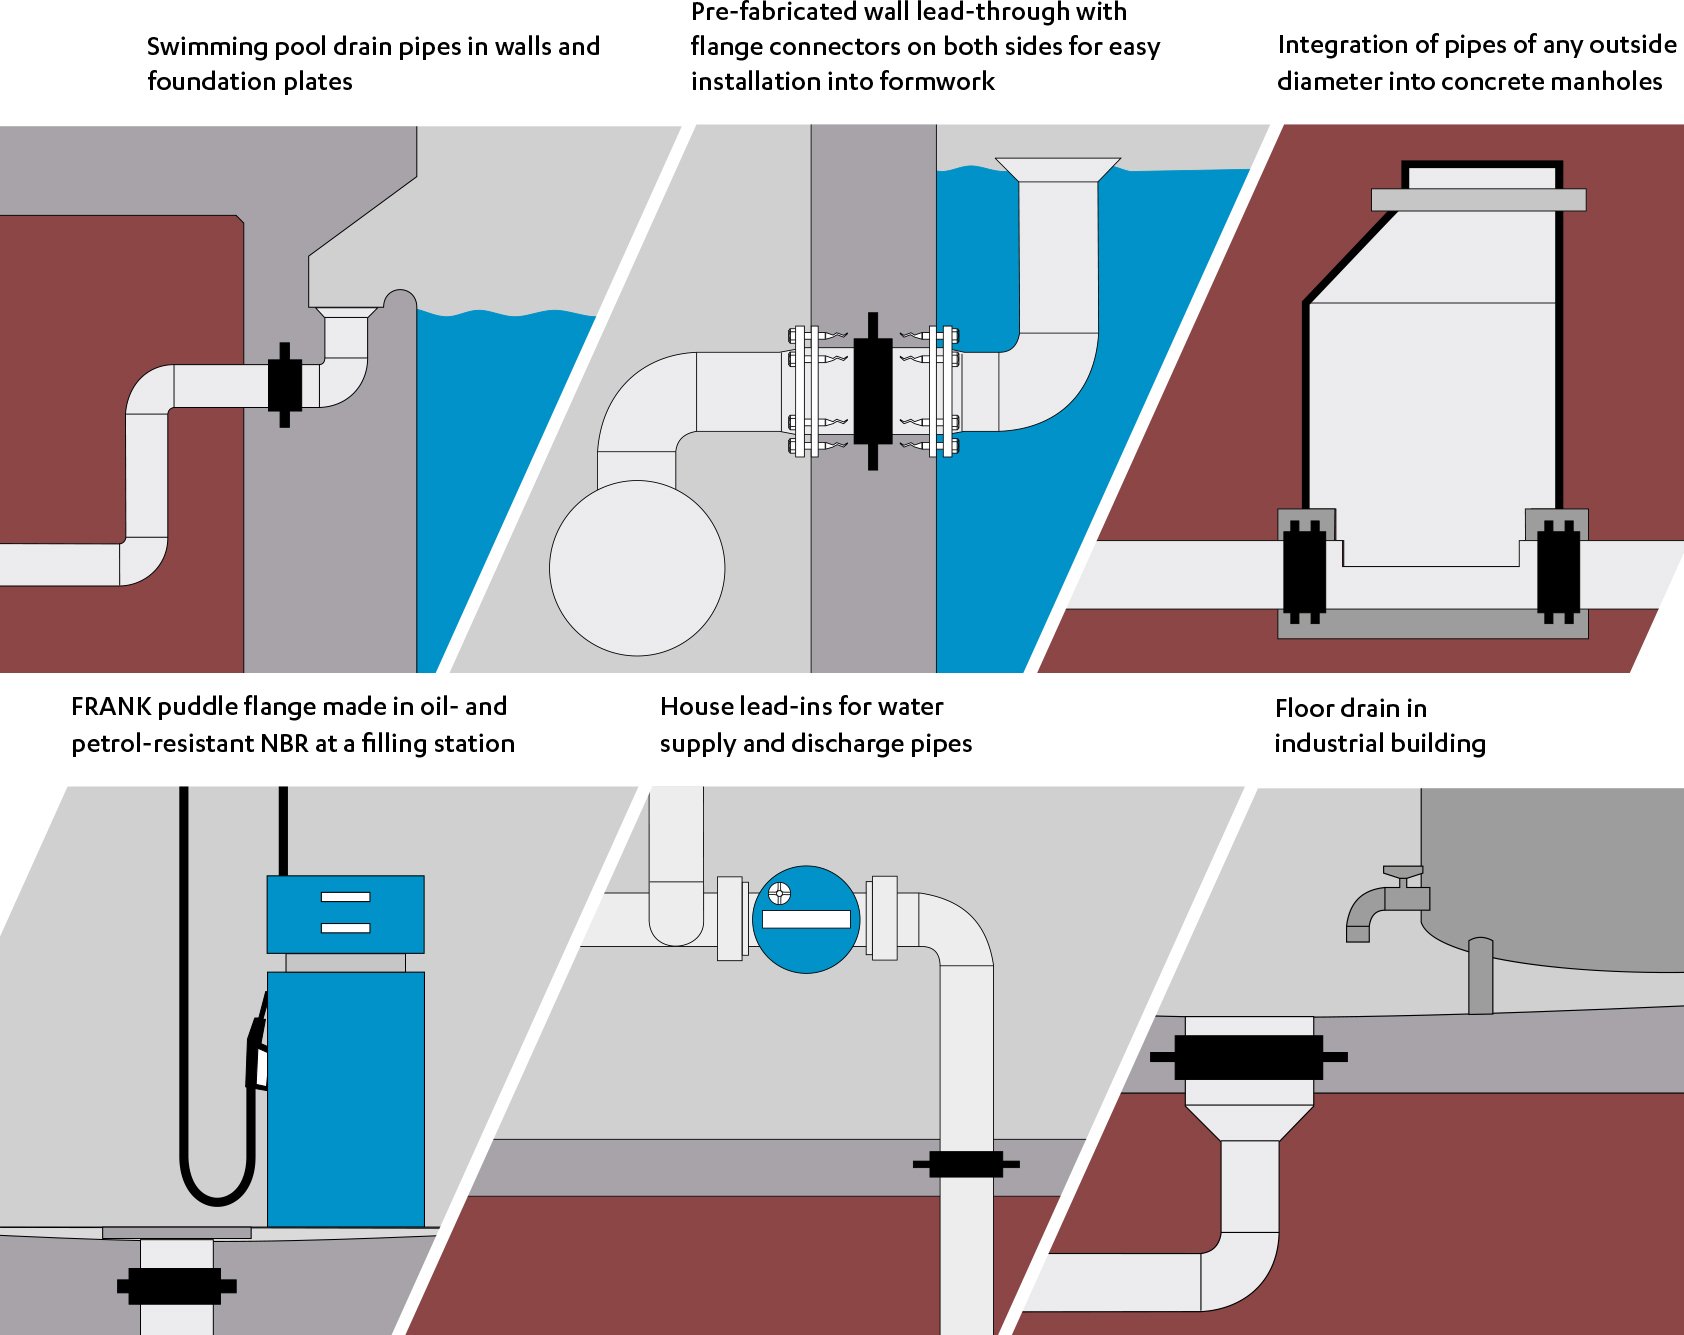 Liquid Level Sensing Using Cdcs besides Video Stratification Buffer Tank SPS furthermore Puddle Flanges in addition Sustainable Water Heating also Kent Ro Uf Water Purifiers Between 12000 To 15000 Rupees. on water tank